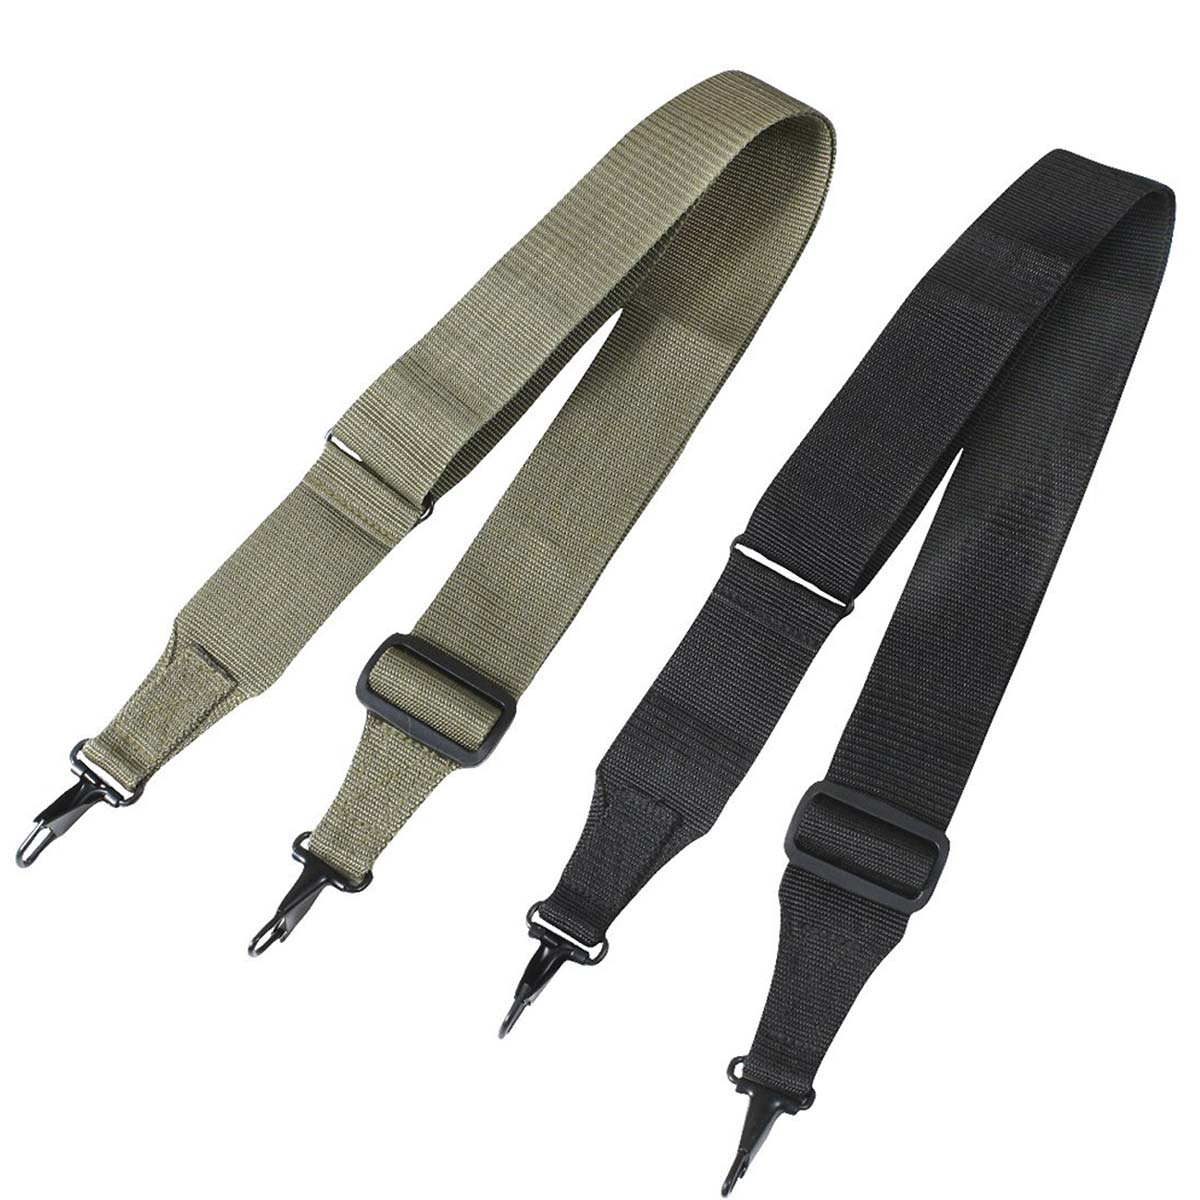 Rothco General Purpose Utility Strap with Clips